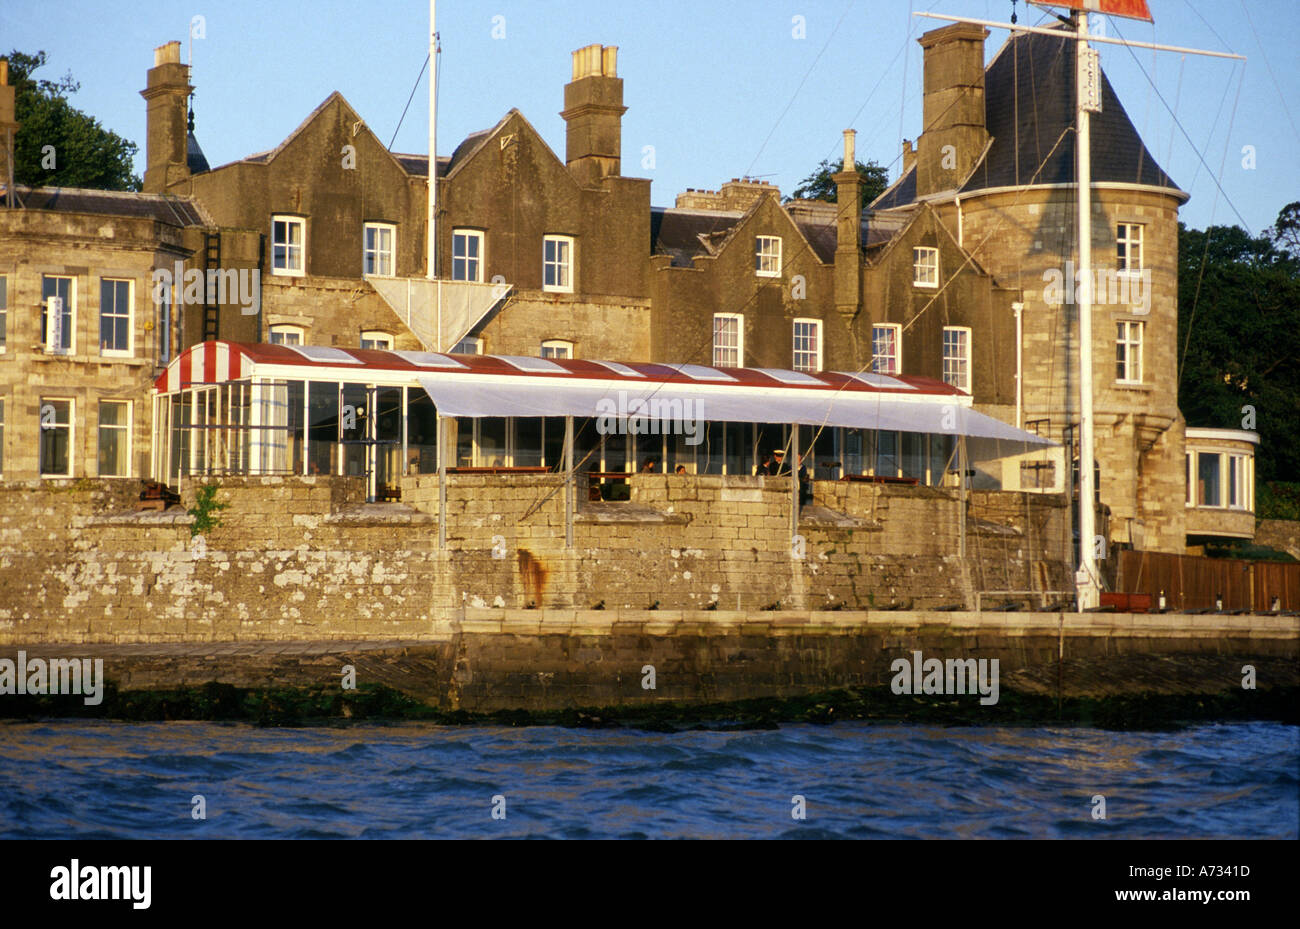 The Royal Yacht Squadron Worlds most exclusive Yacht Club Cowes Isle of Wight England - Stock Image